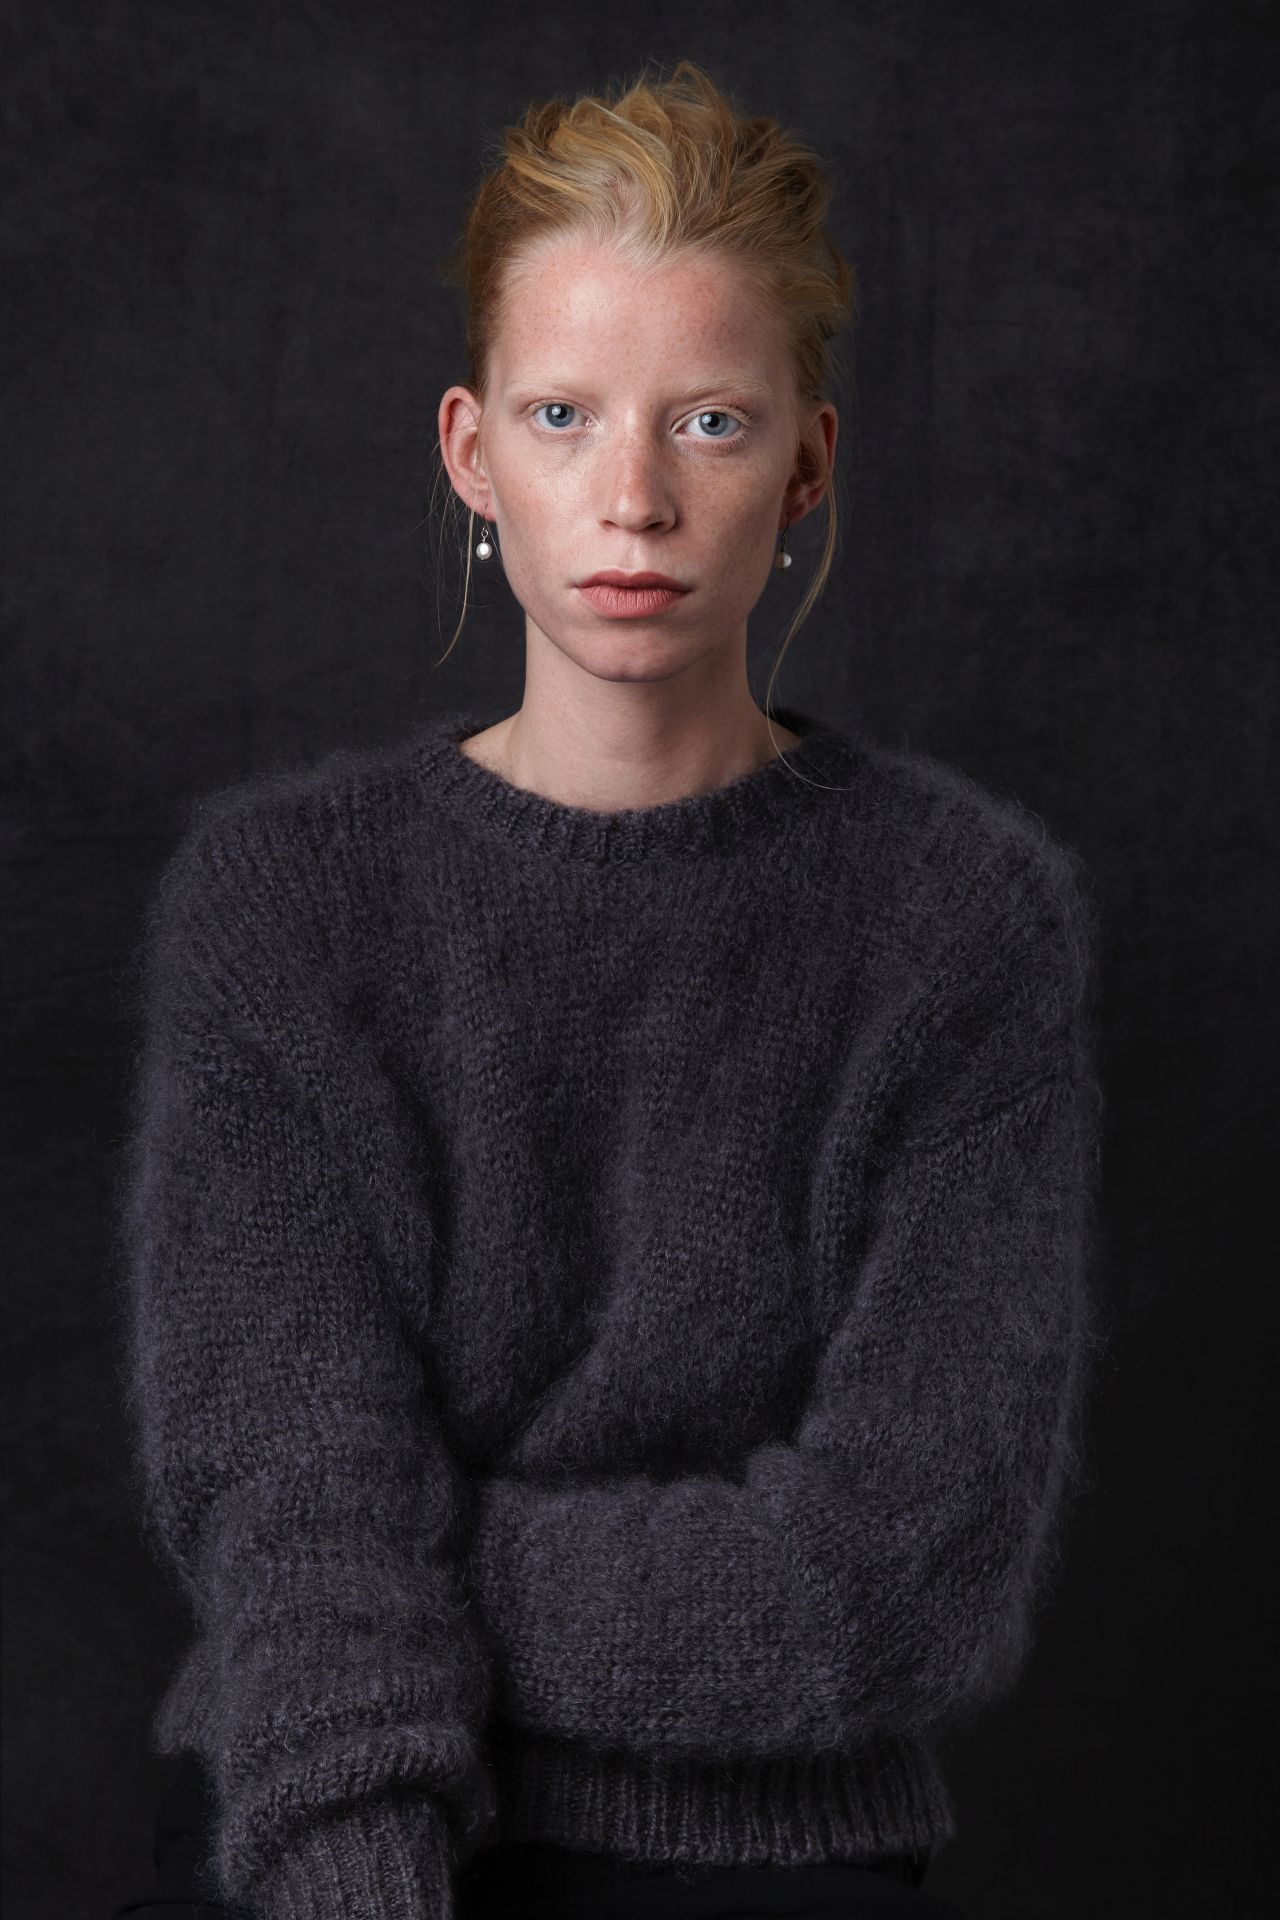 Daan mohair wool sweater from Dutch goats with model.